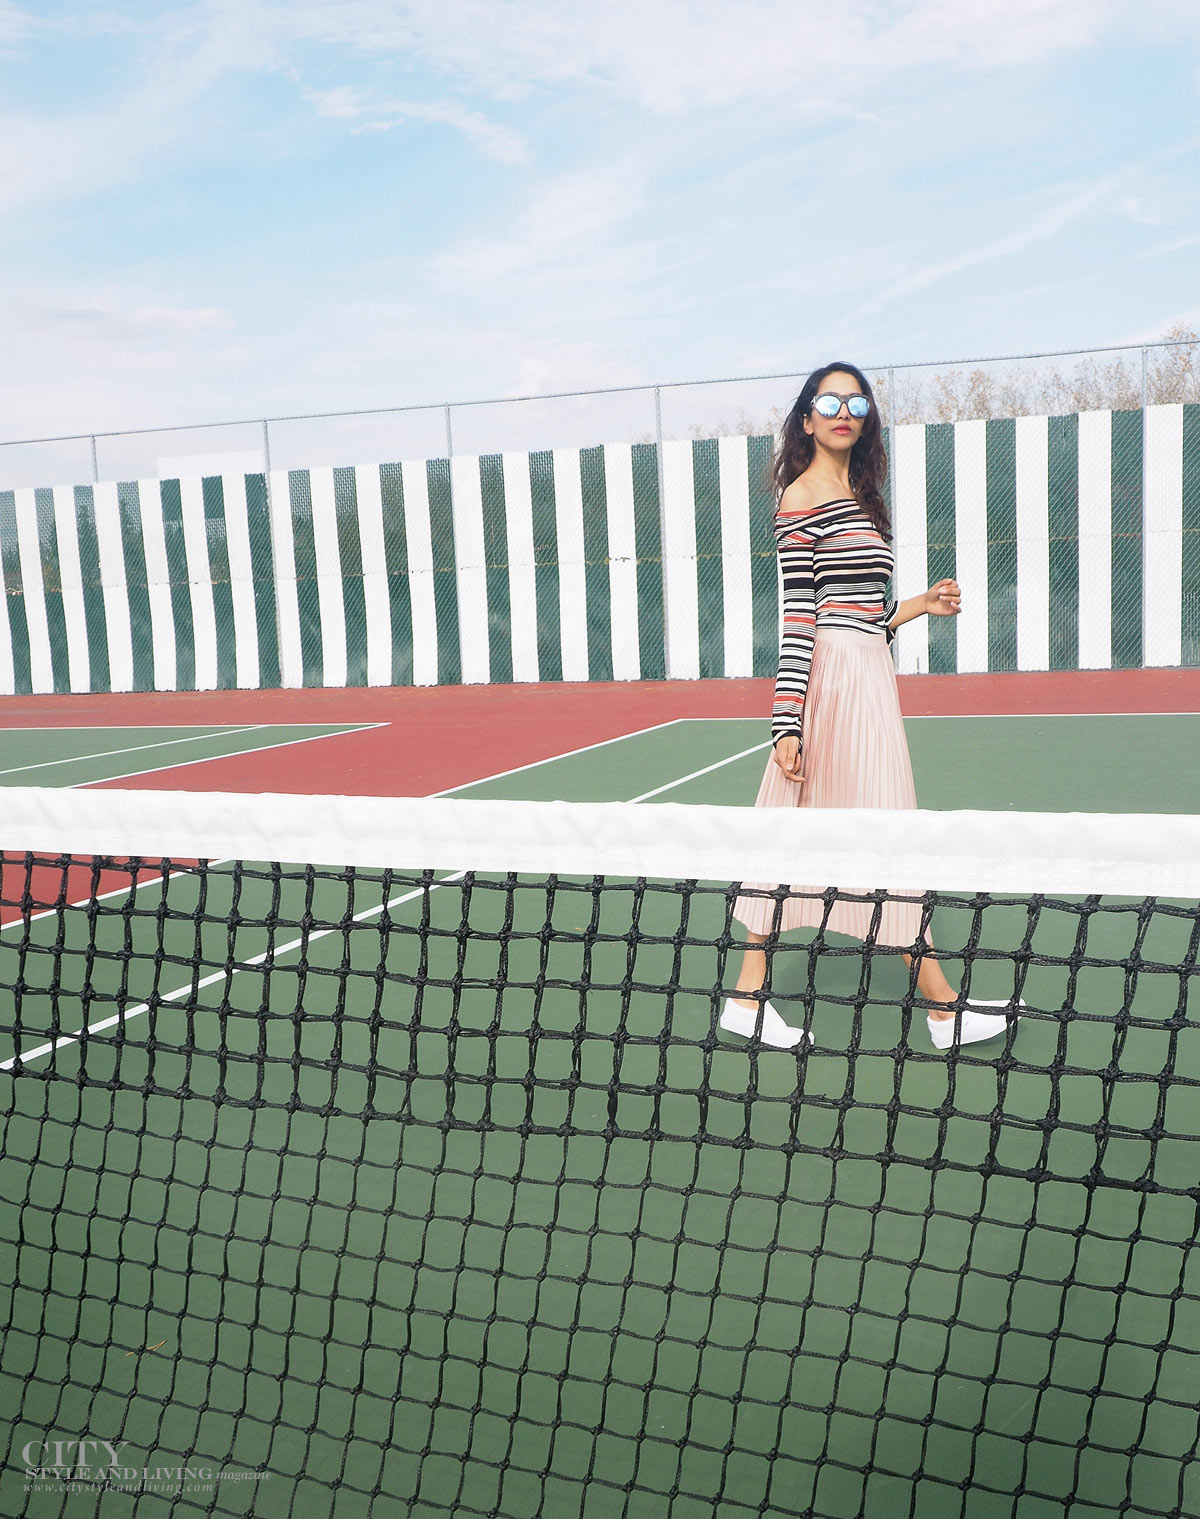 City STyle and Living The Editors Notebook style blogger tennis court topshop metallic skirt, off shoulder free people top, le specs sunglasses and white sneakers walking by net